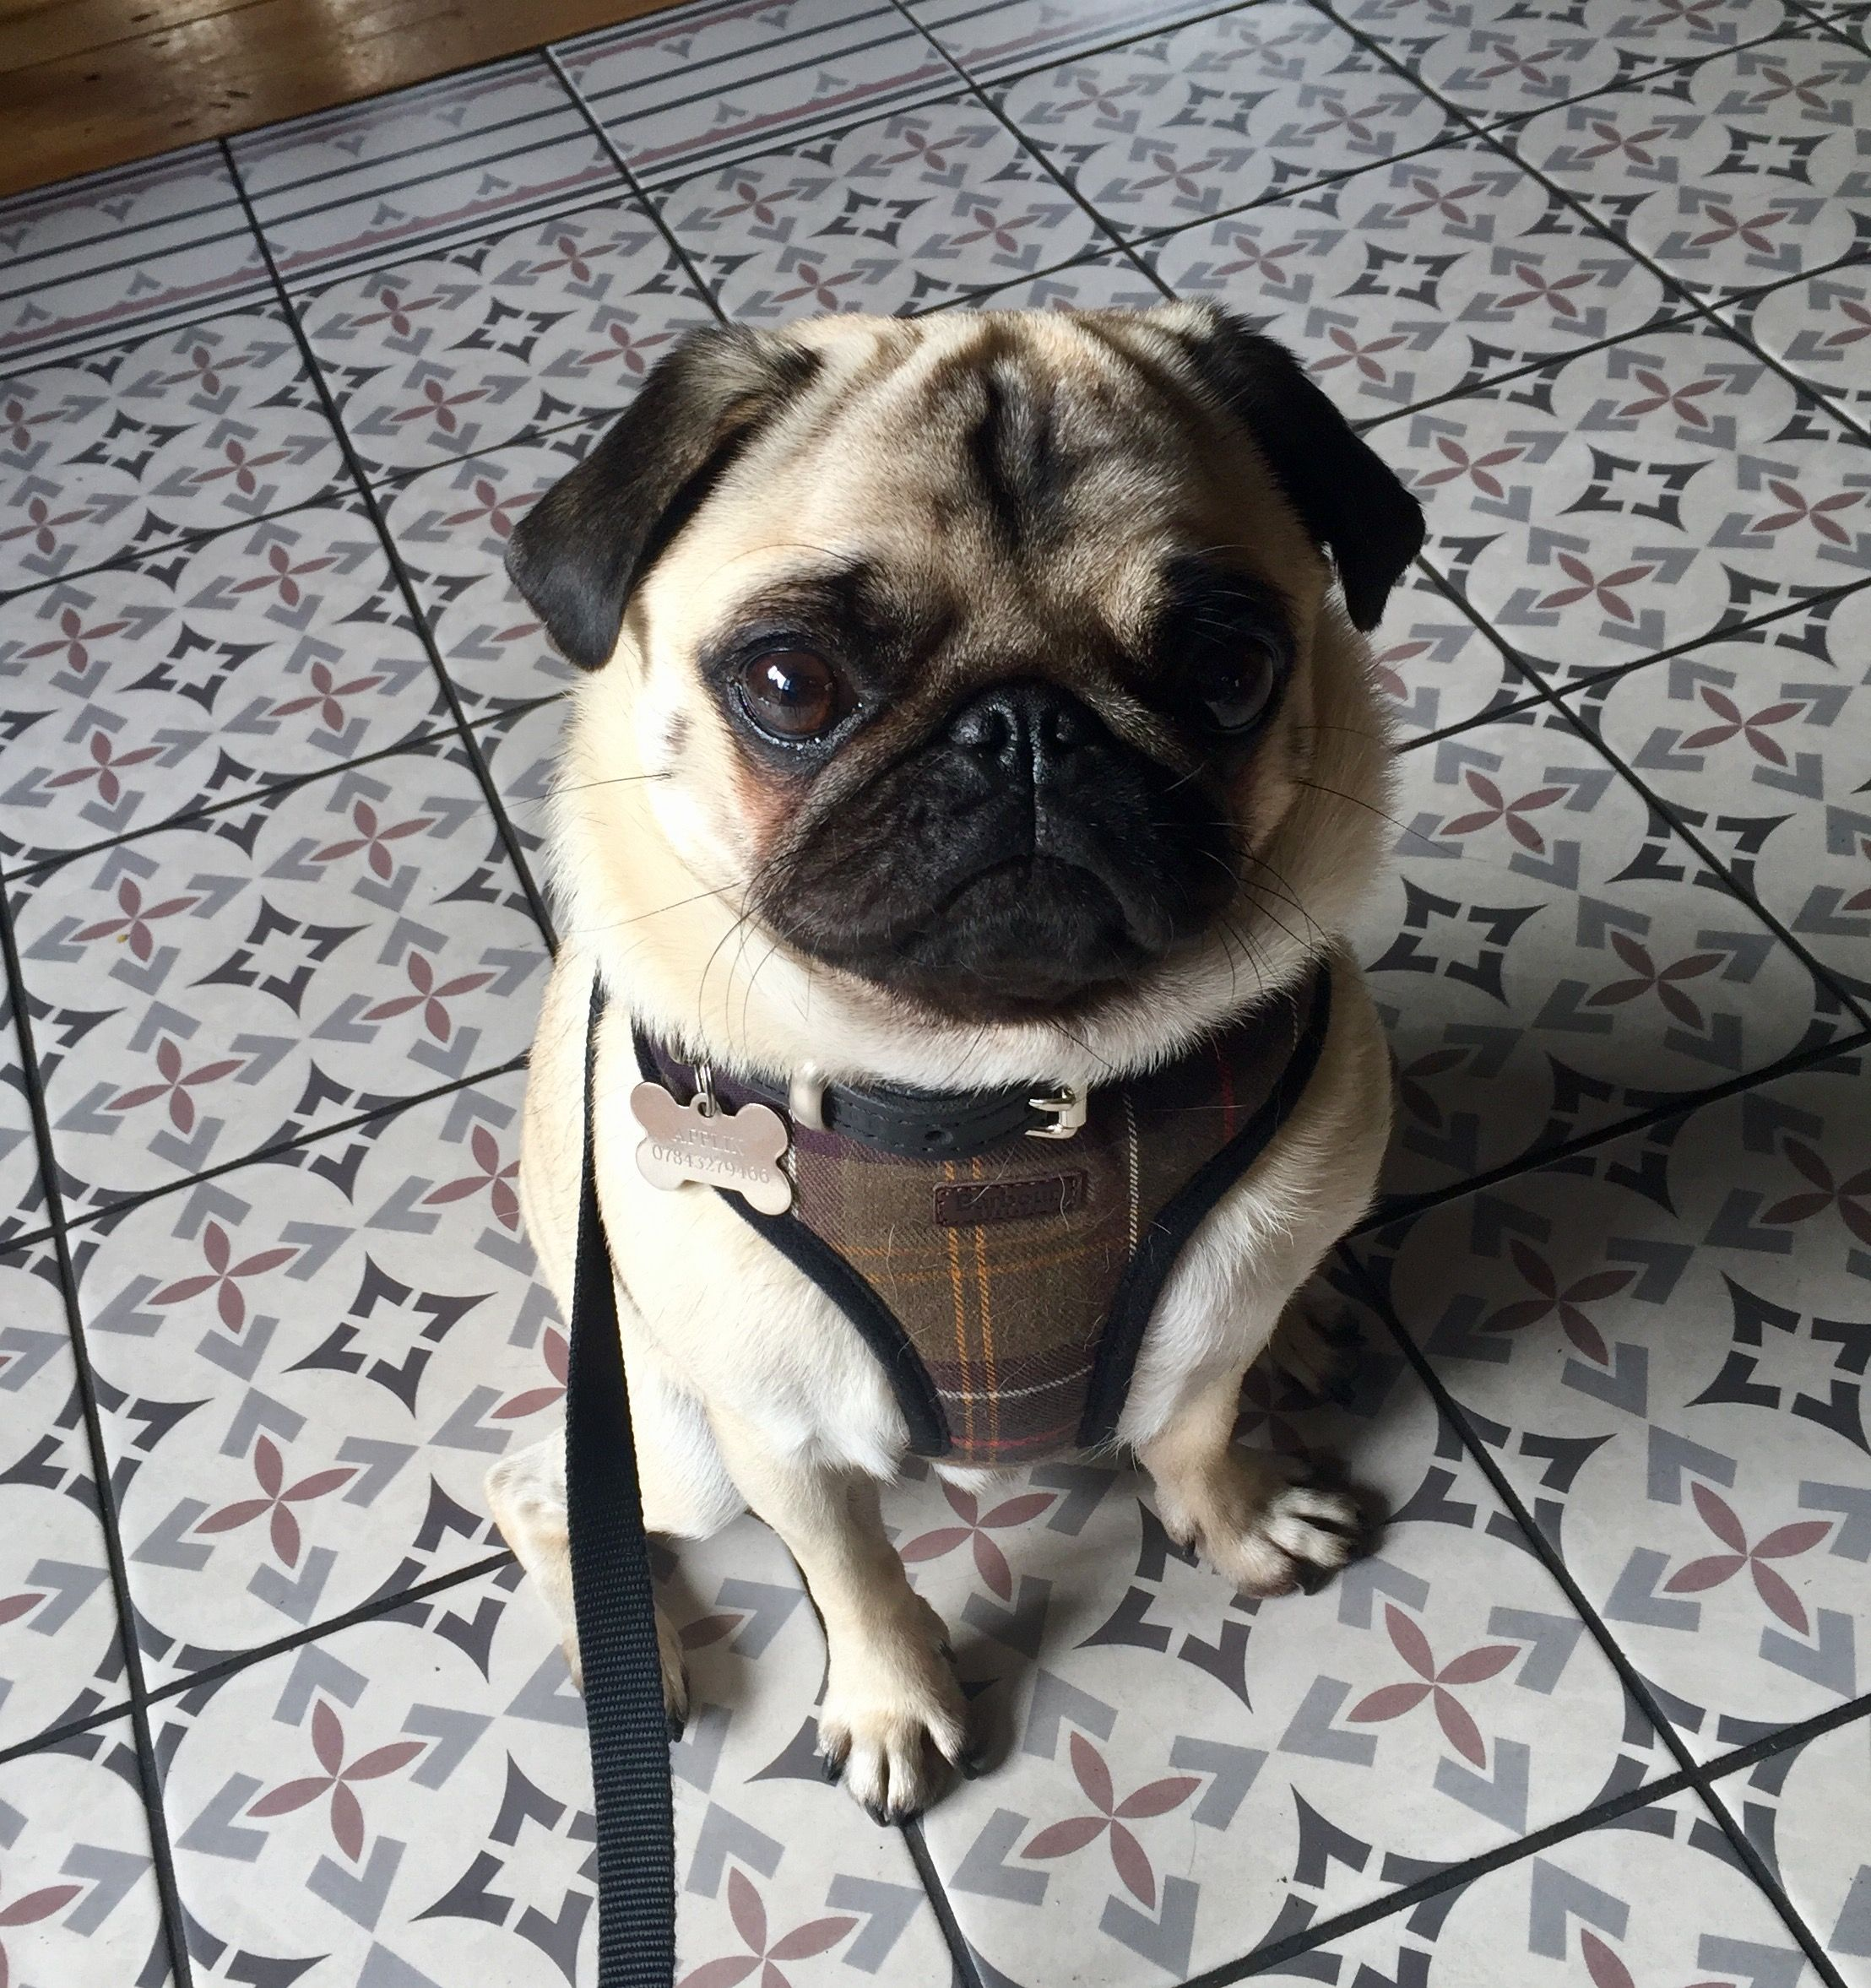 Barbour Harness With Images Dog Harness Pugs Bulldog